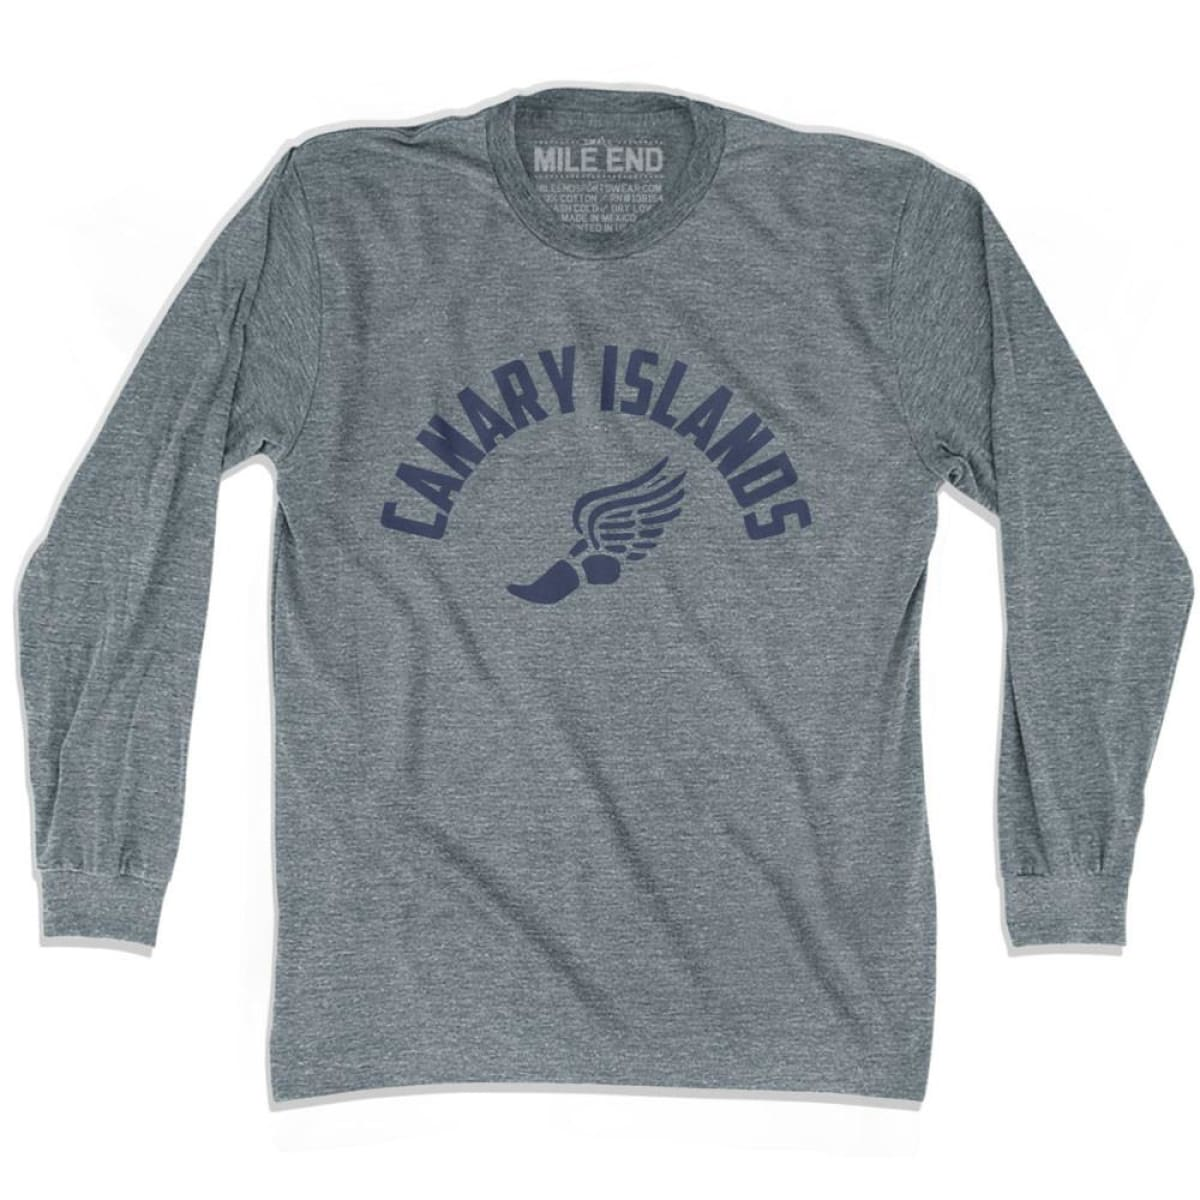 Canary Islands Track Long Sleeve T-shirt - Athletic Grey / Adult X-Small - Mile End Track